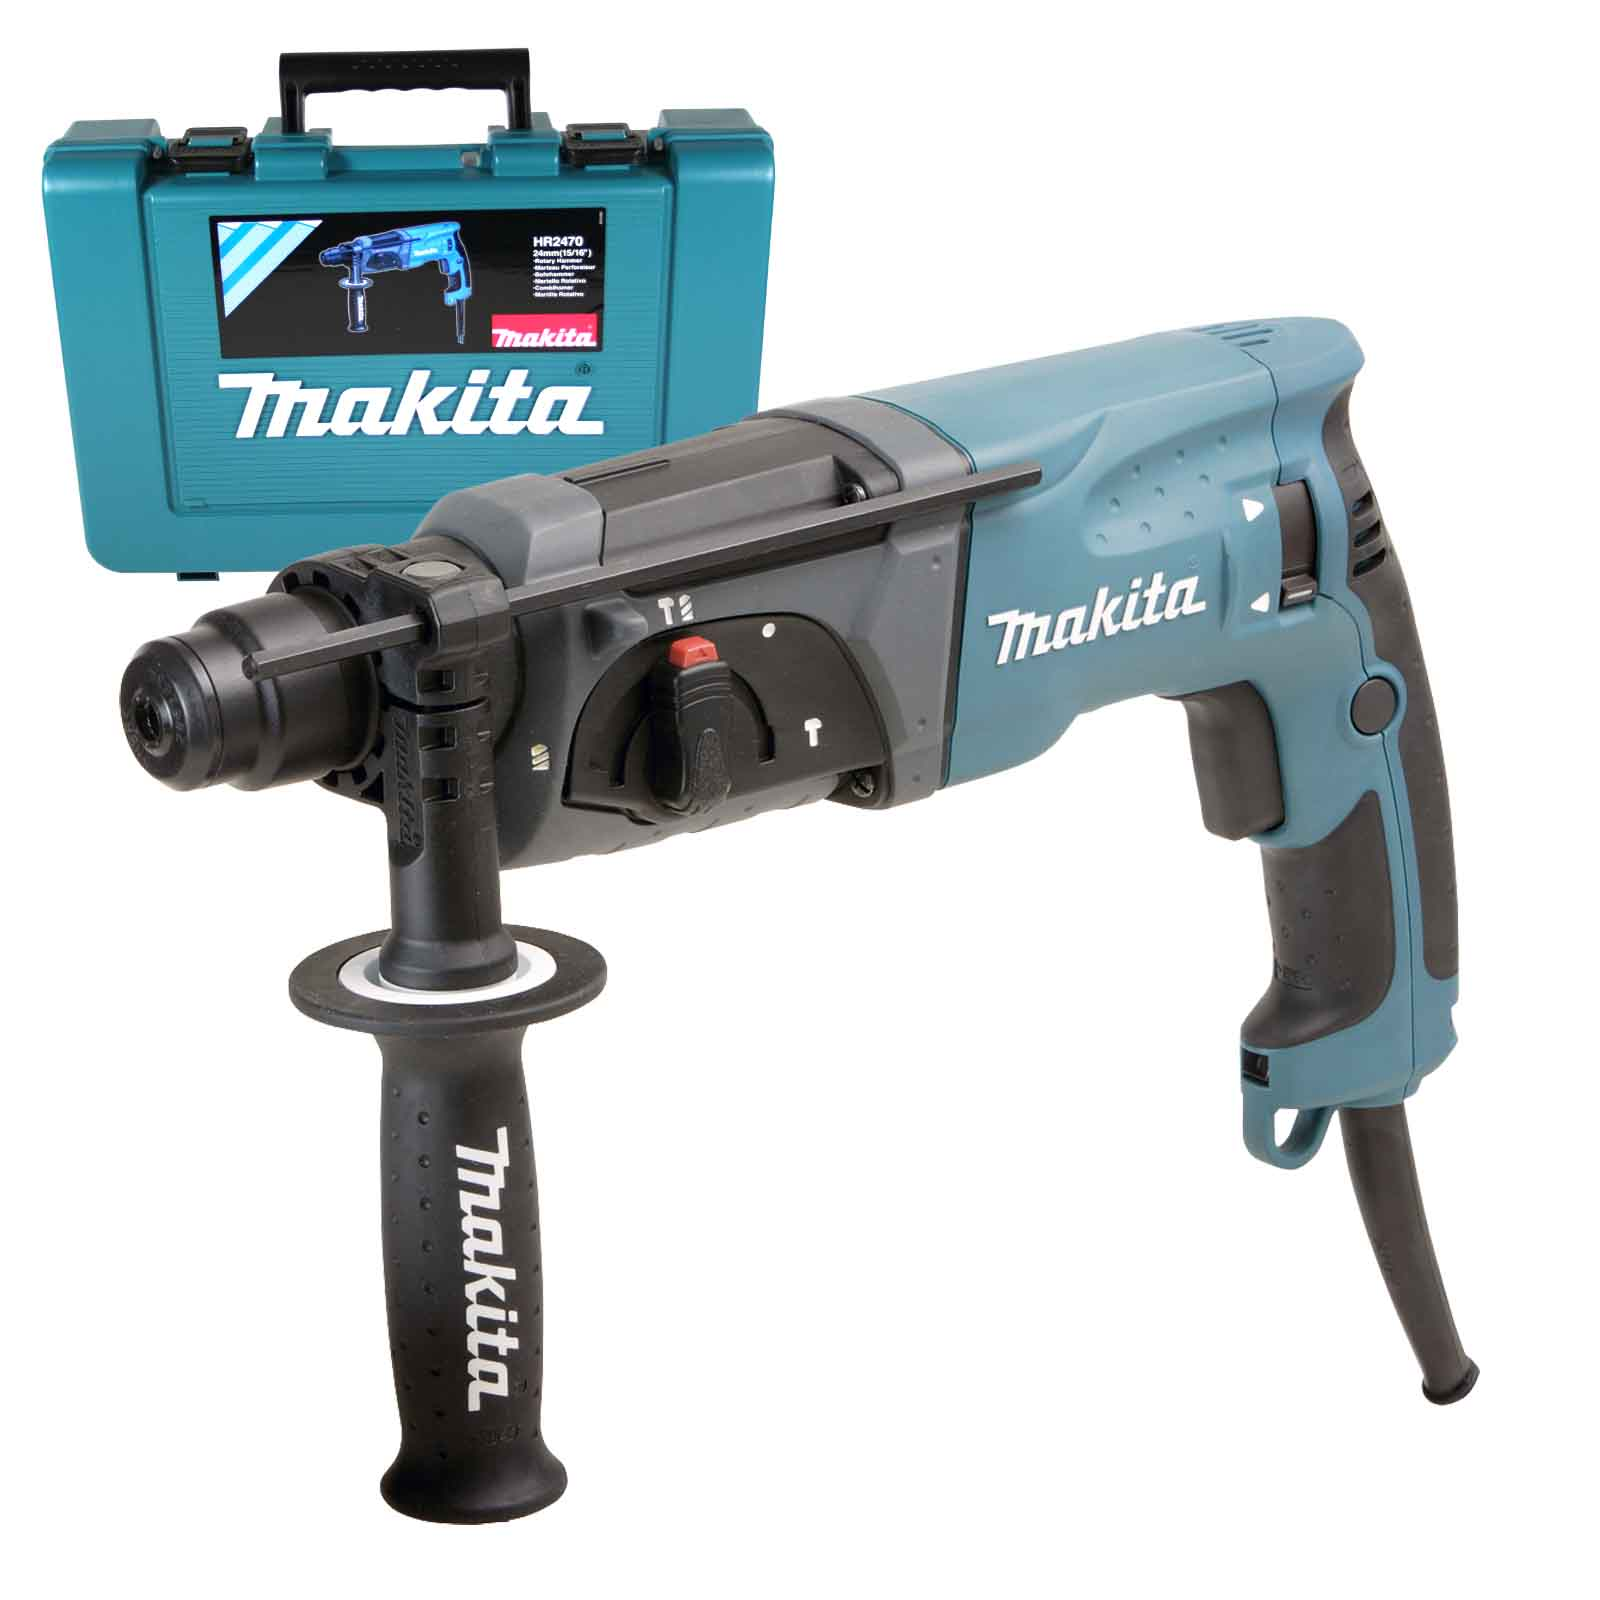 makita kombihammer hr2470 im koffer sds plus nachfolger vom hr2450 ma50431 ebay. Black Bedroom Furniture Sets. Home Design Ideas